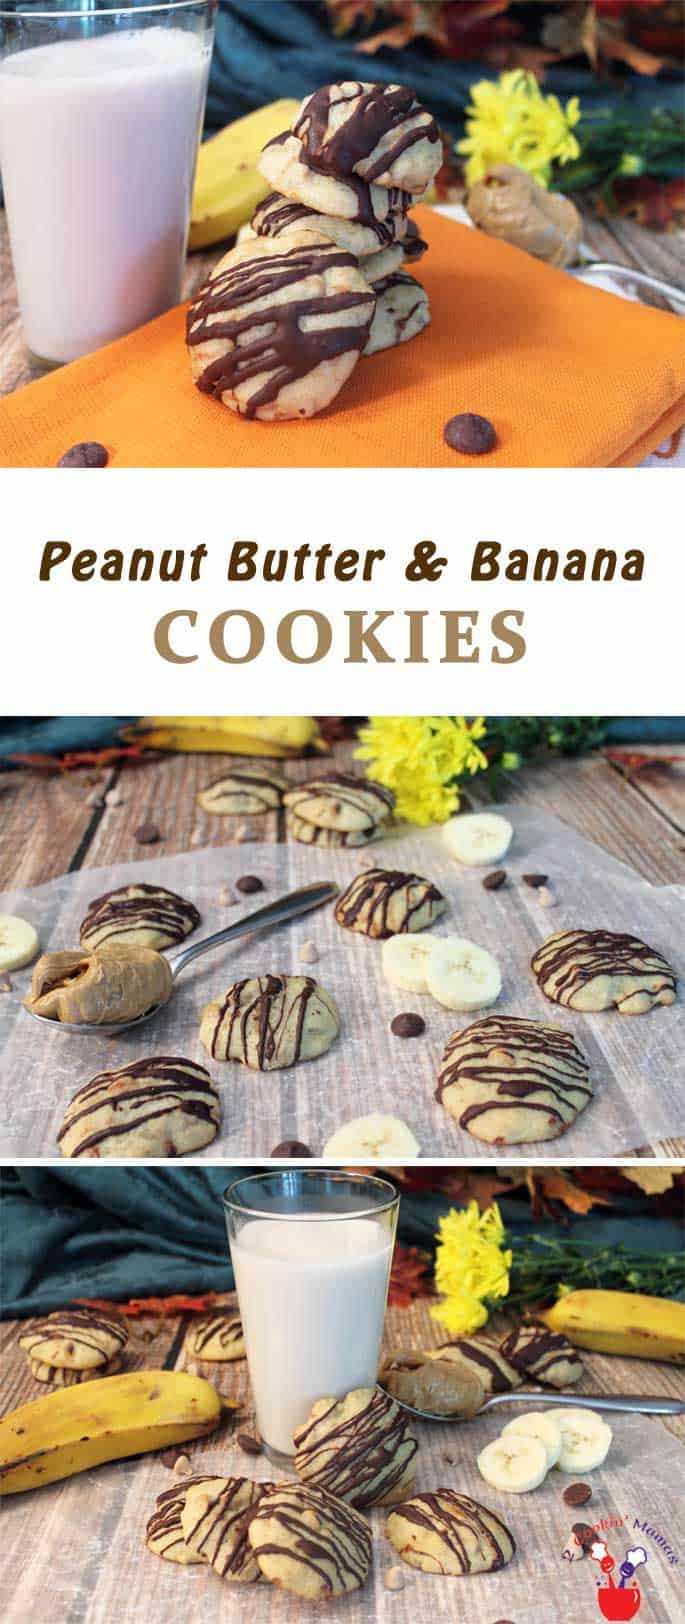 These cookies take peanut butter & banana to a whole new level! Chewy banana bread-like cookies are stuffed with peanut butter chips then drizzled with dark chocolate. Yum! #cookies #banana #peanutbutter #recipe